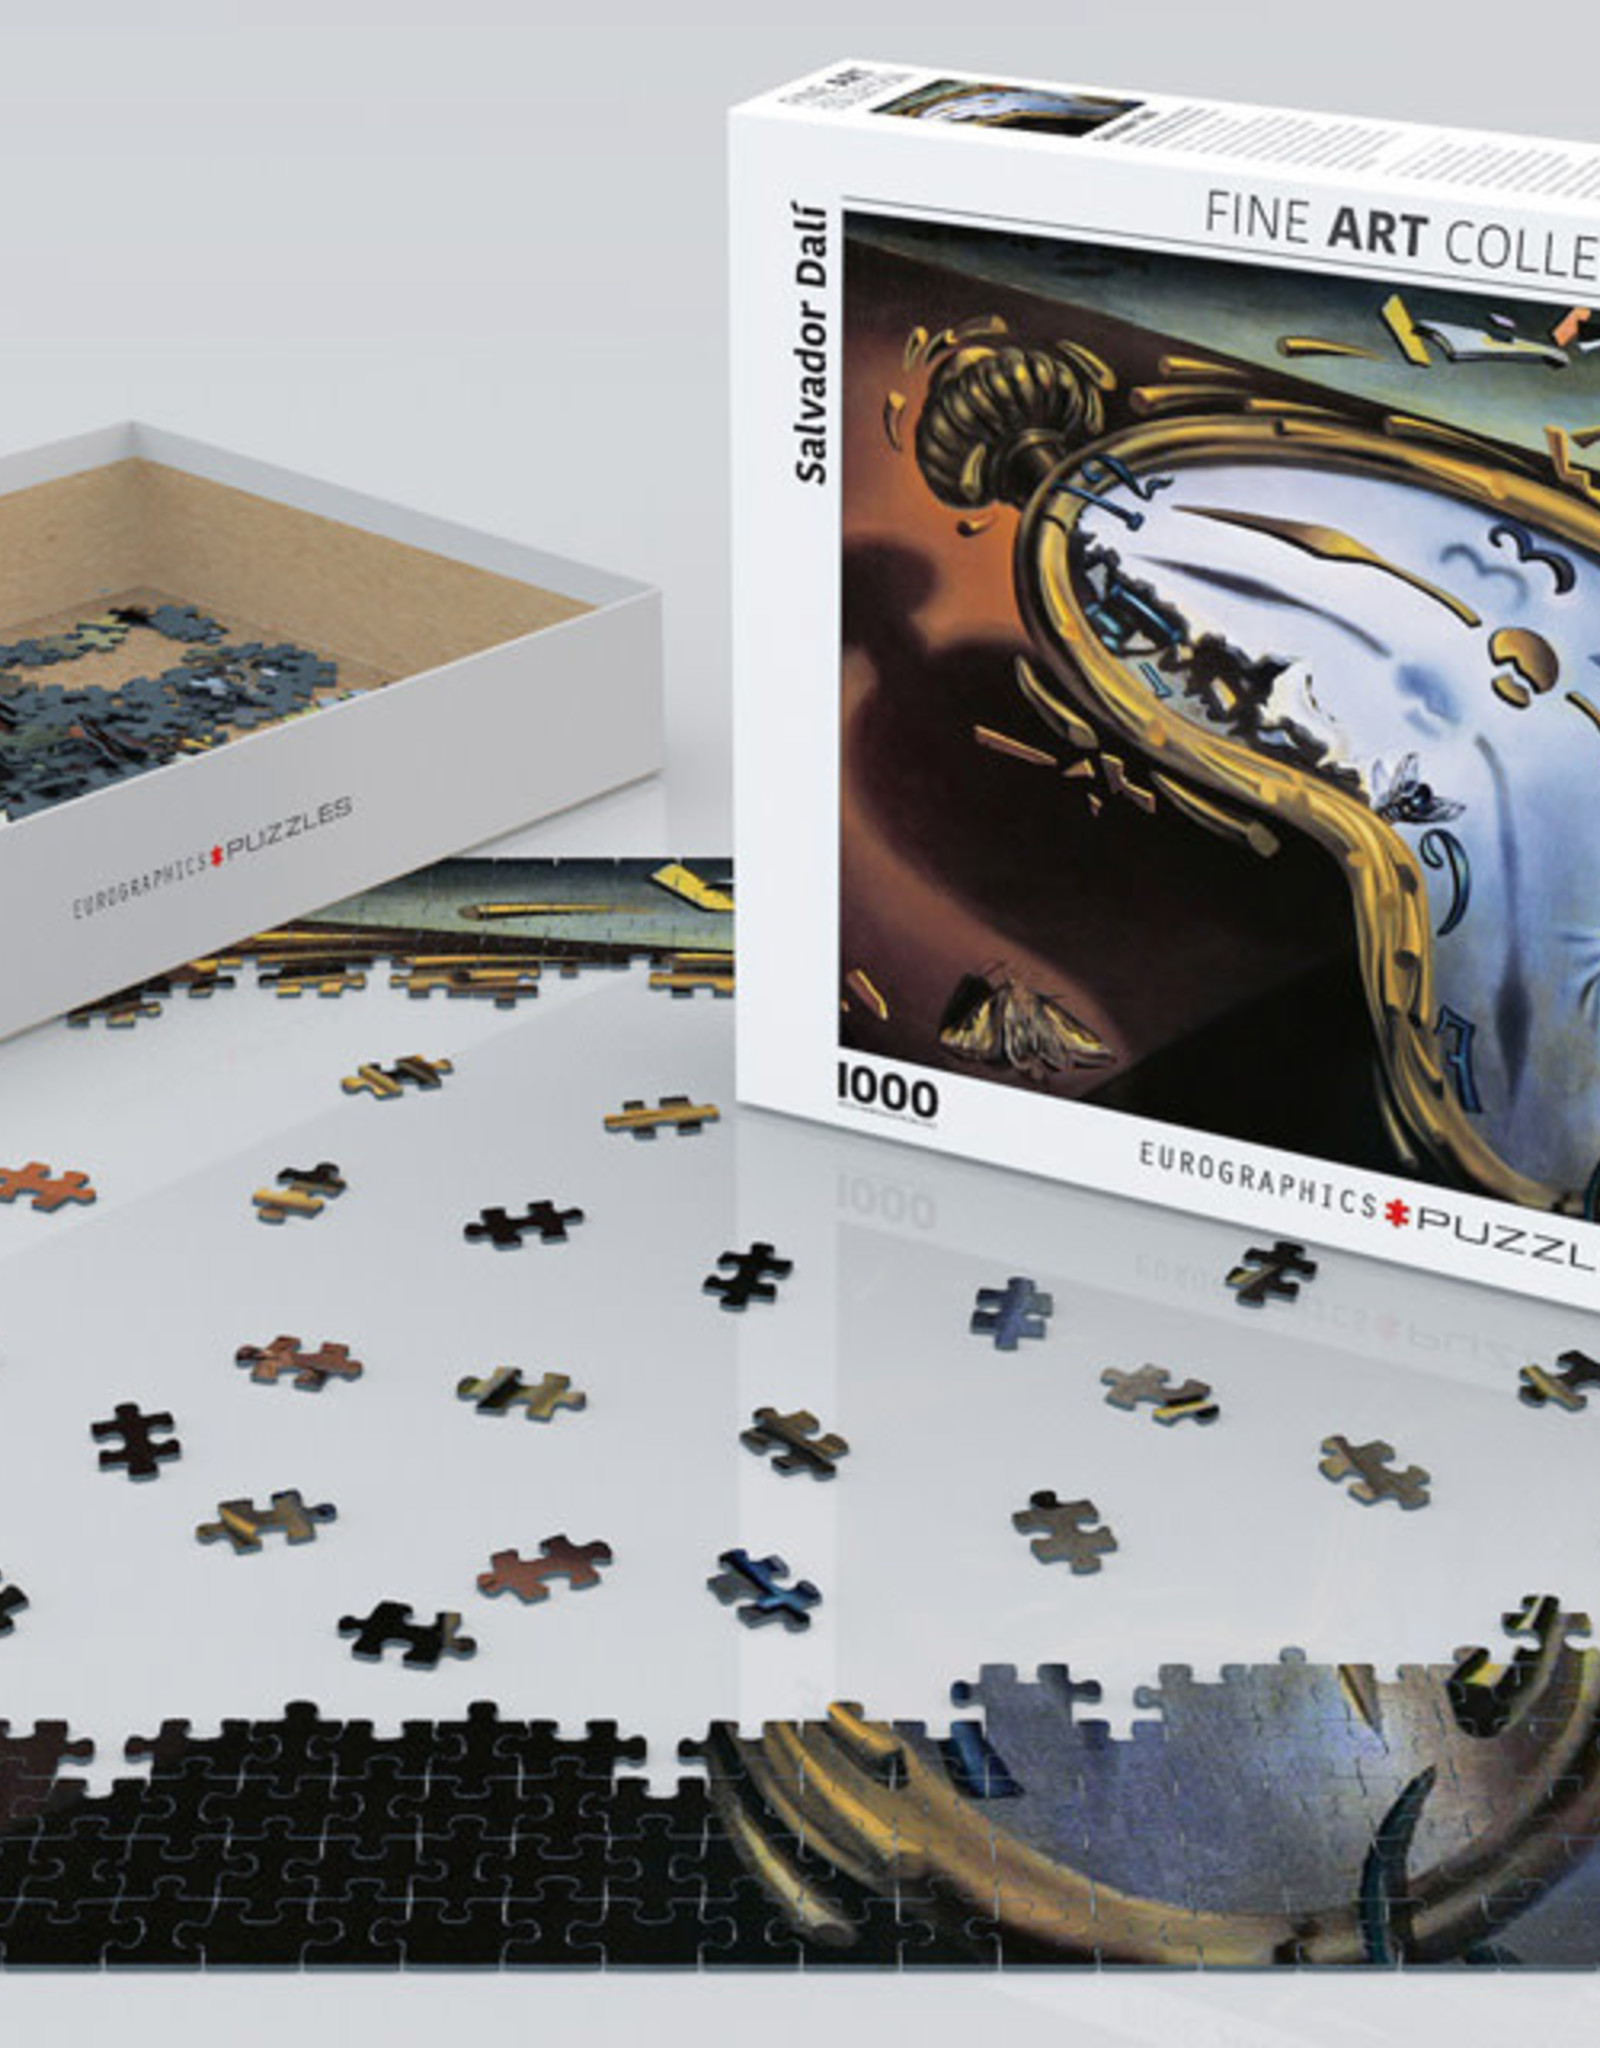 Eurographics Soft Watch at Moment of First Explosion Puzzle 1000 PCS